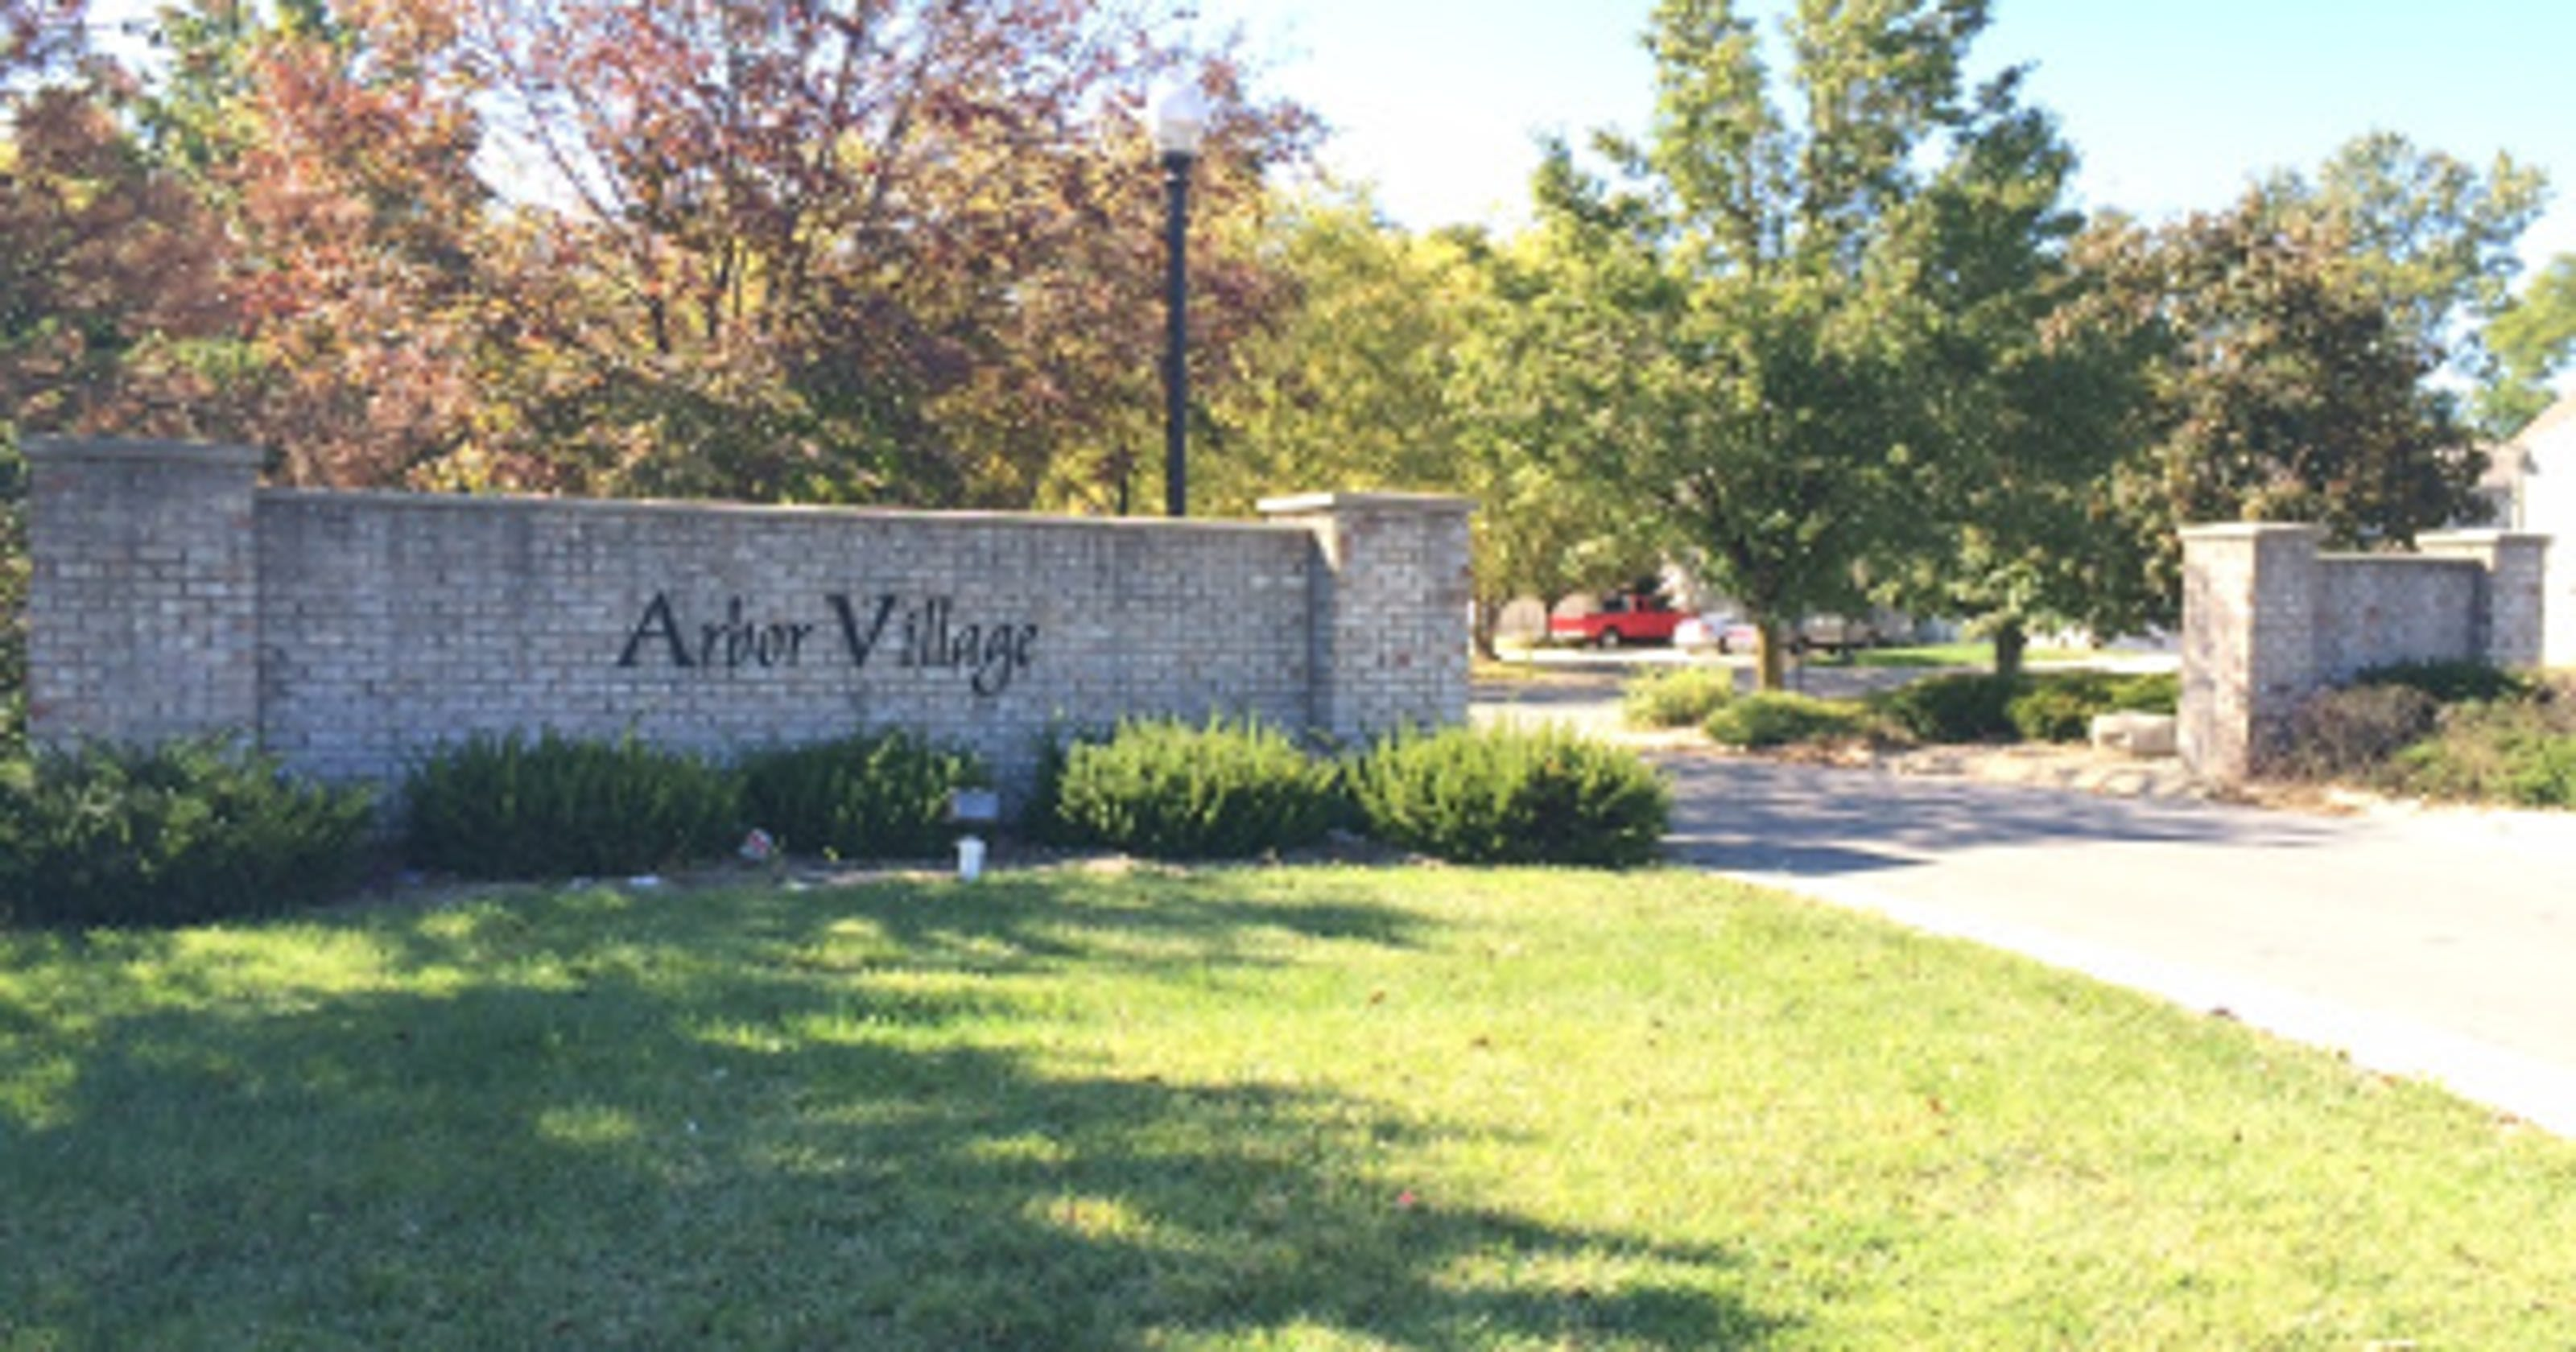 Citizens Energy, Arbor Village's HOA reach deal to settle $60K